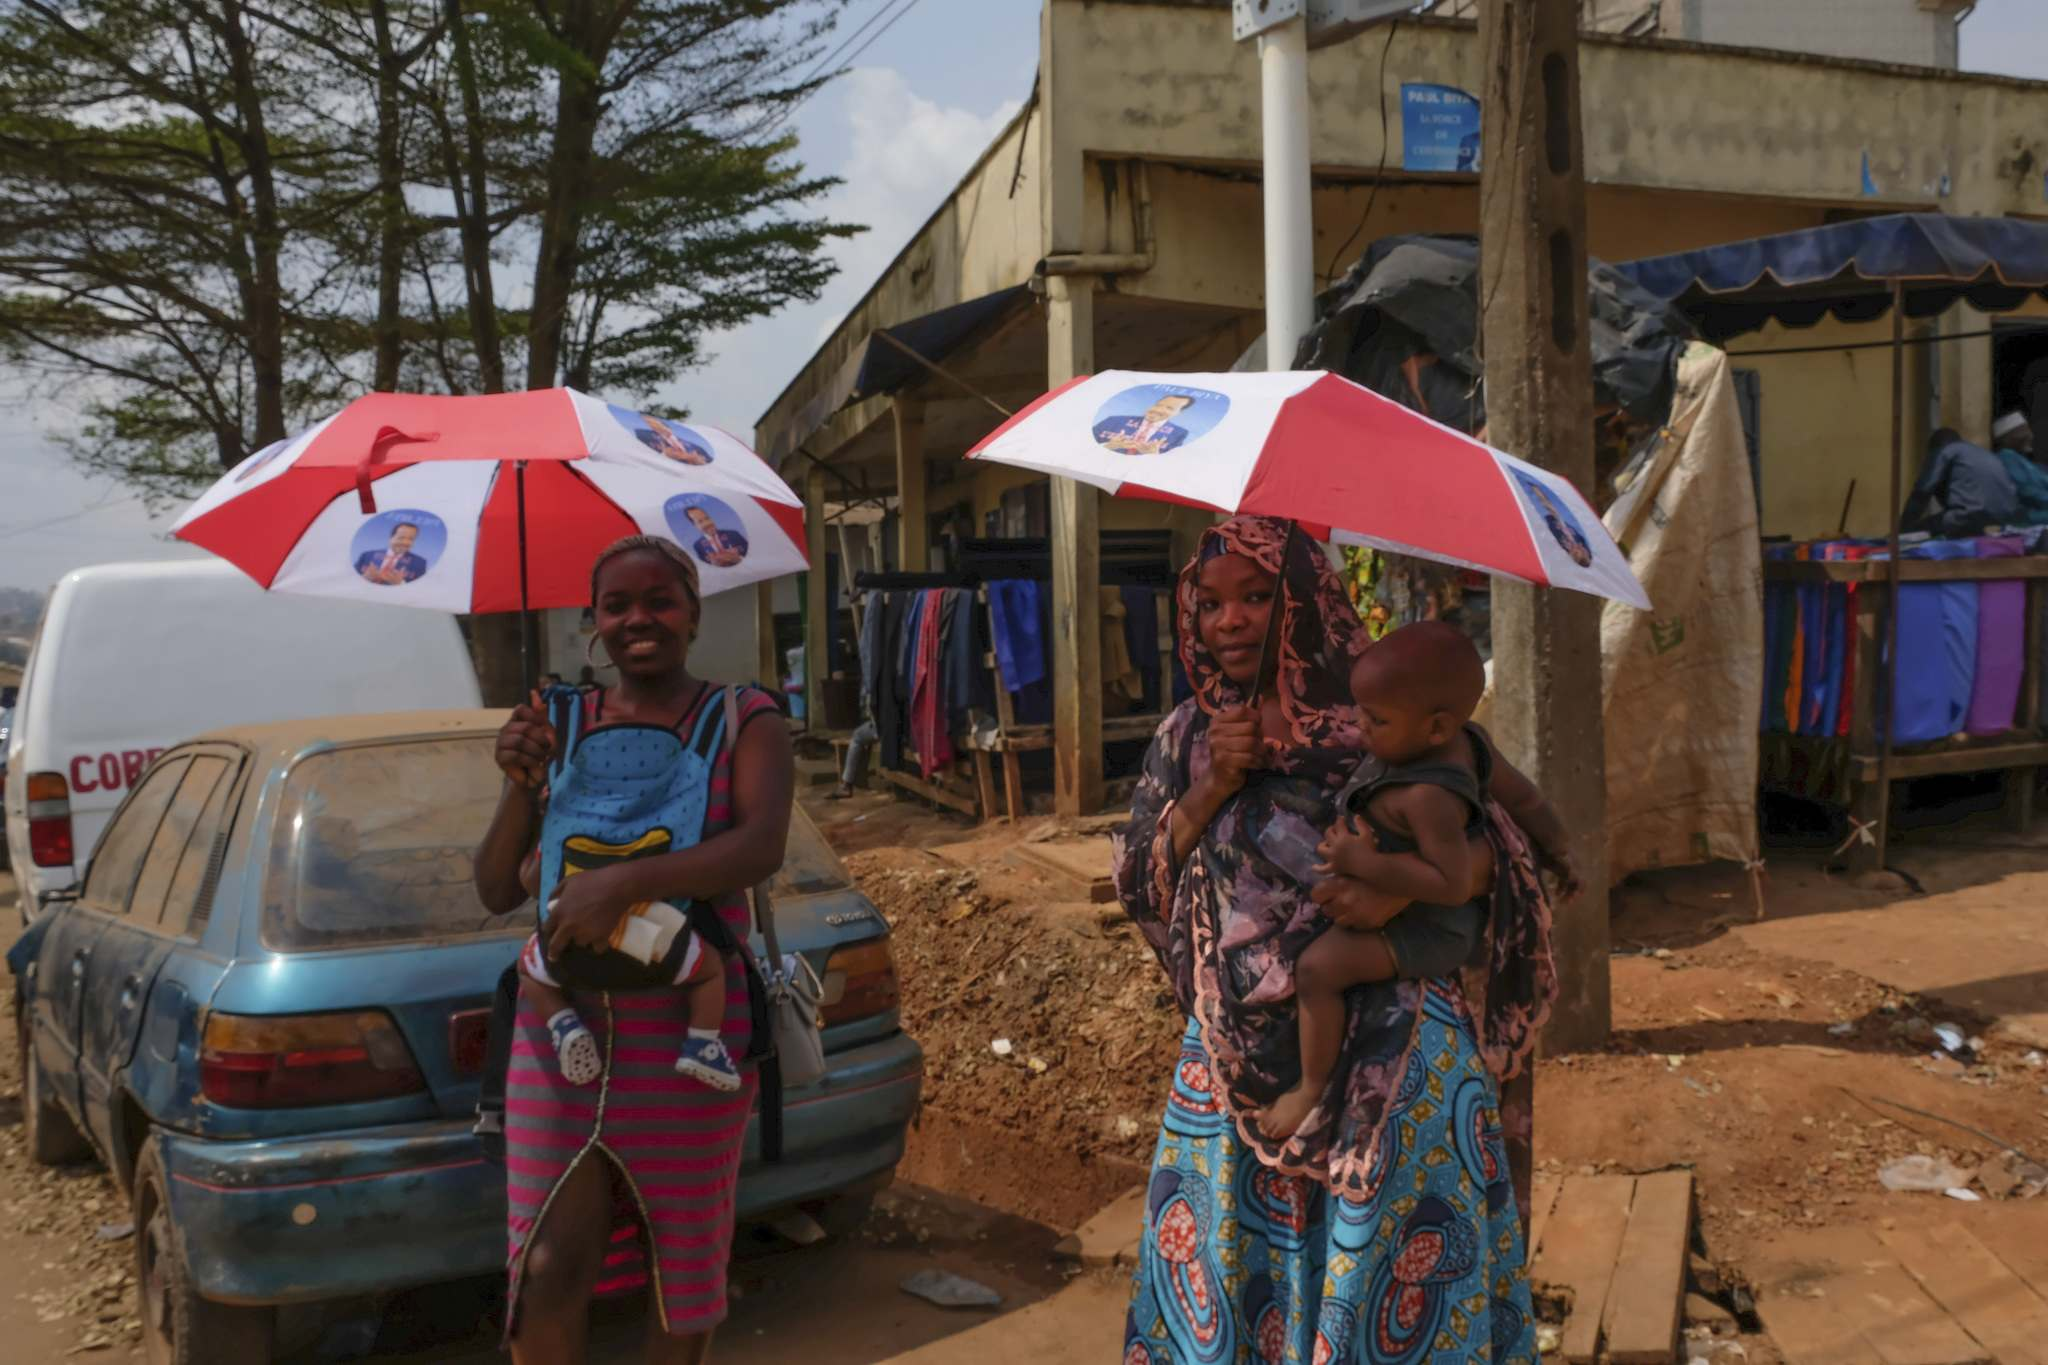 Siobhan O'Grady / washington post</p><p>Women in Yaoundé, Cameroon, carry umbrellas they received as campaign handouts featuring President Paul Biya, whose government forces have been criticized for reportedly attacking unarmed citizens in the country's anglophone villages.</p>